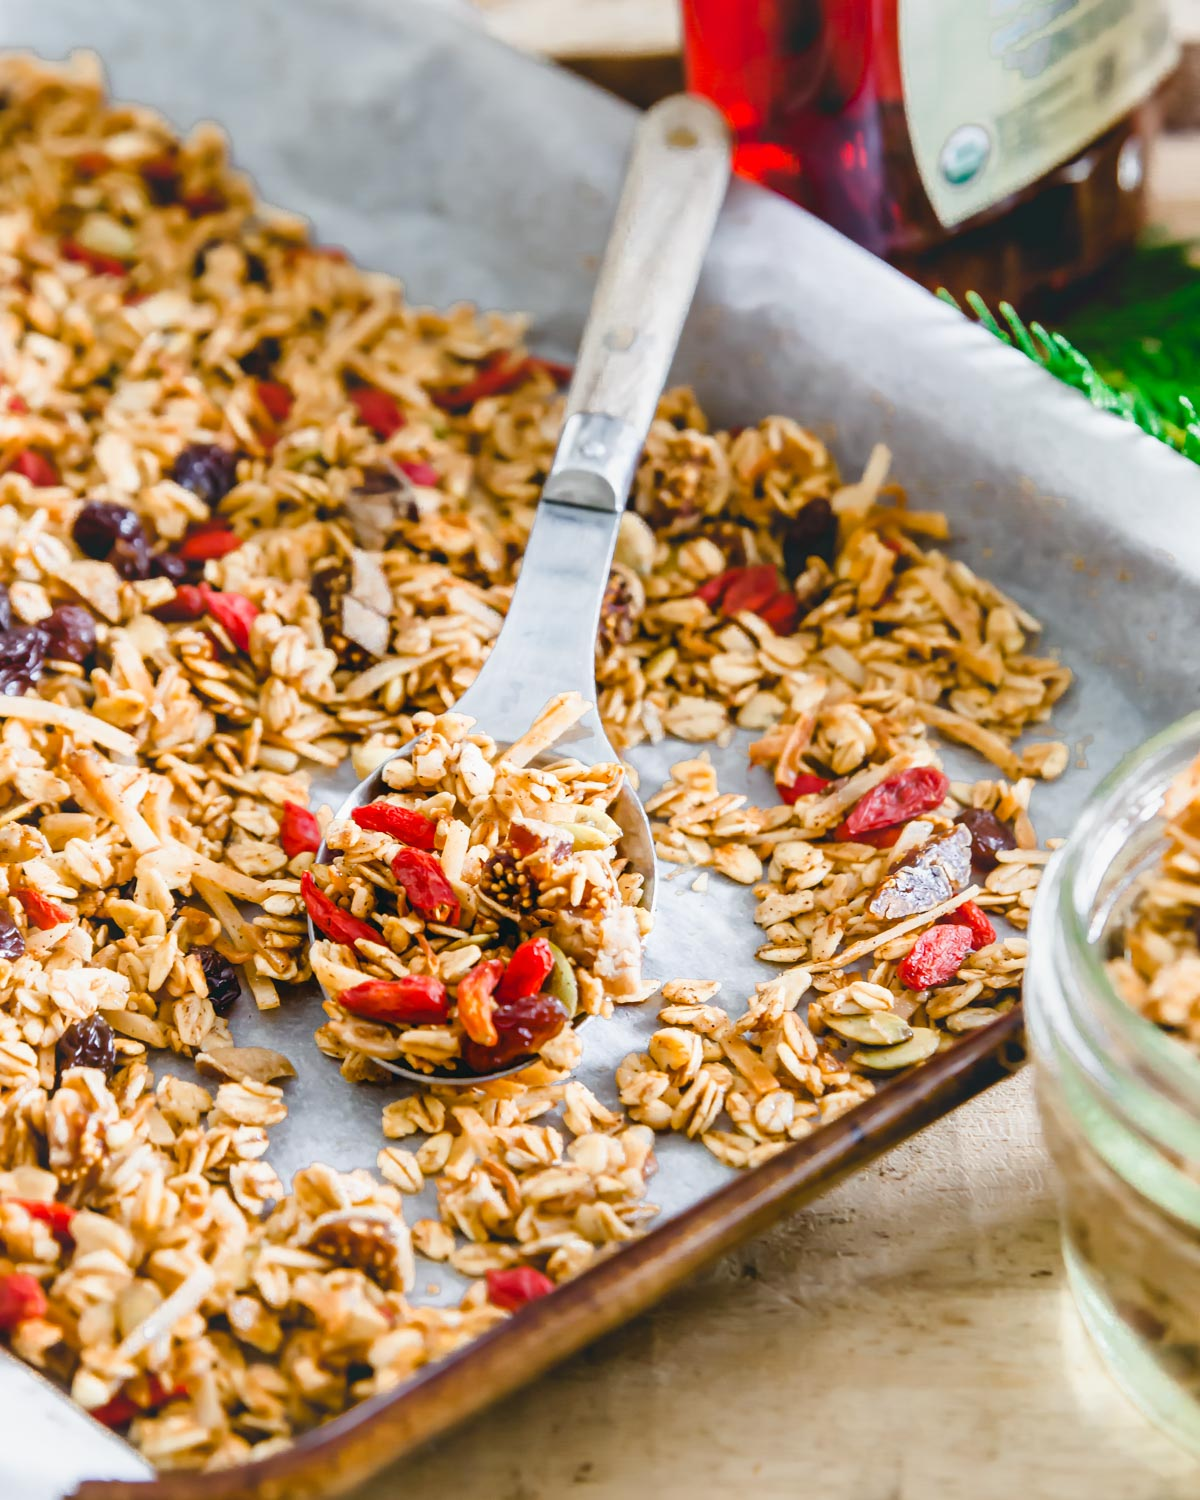 Gluten free oat based granola made with pepitas, sunflower seeds, buckwheat groats, goji berries, raisins and figs uses absolutely no nuts in the recipe so it's perfect for all diets!